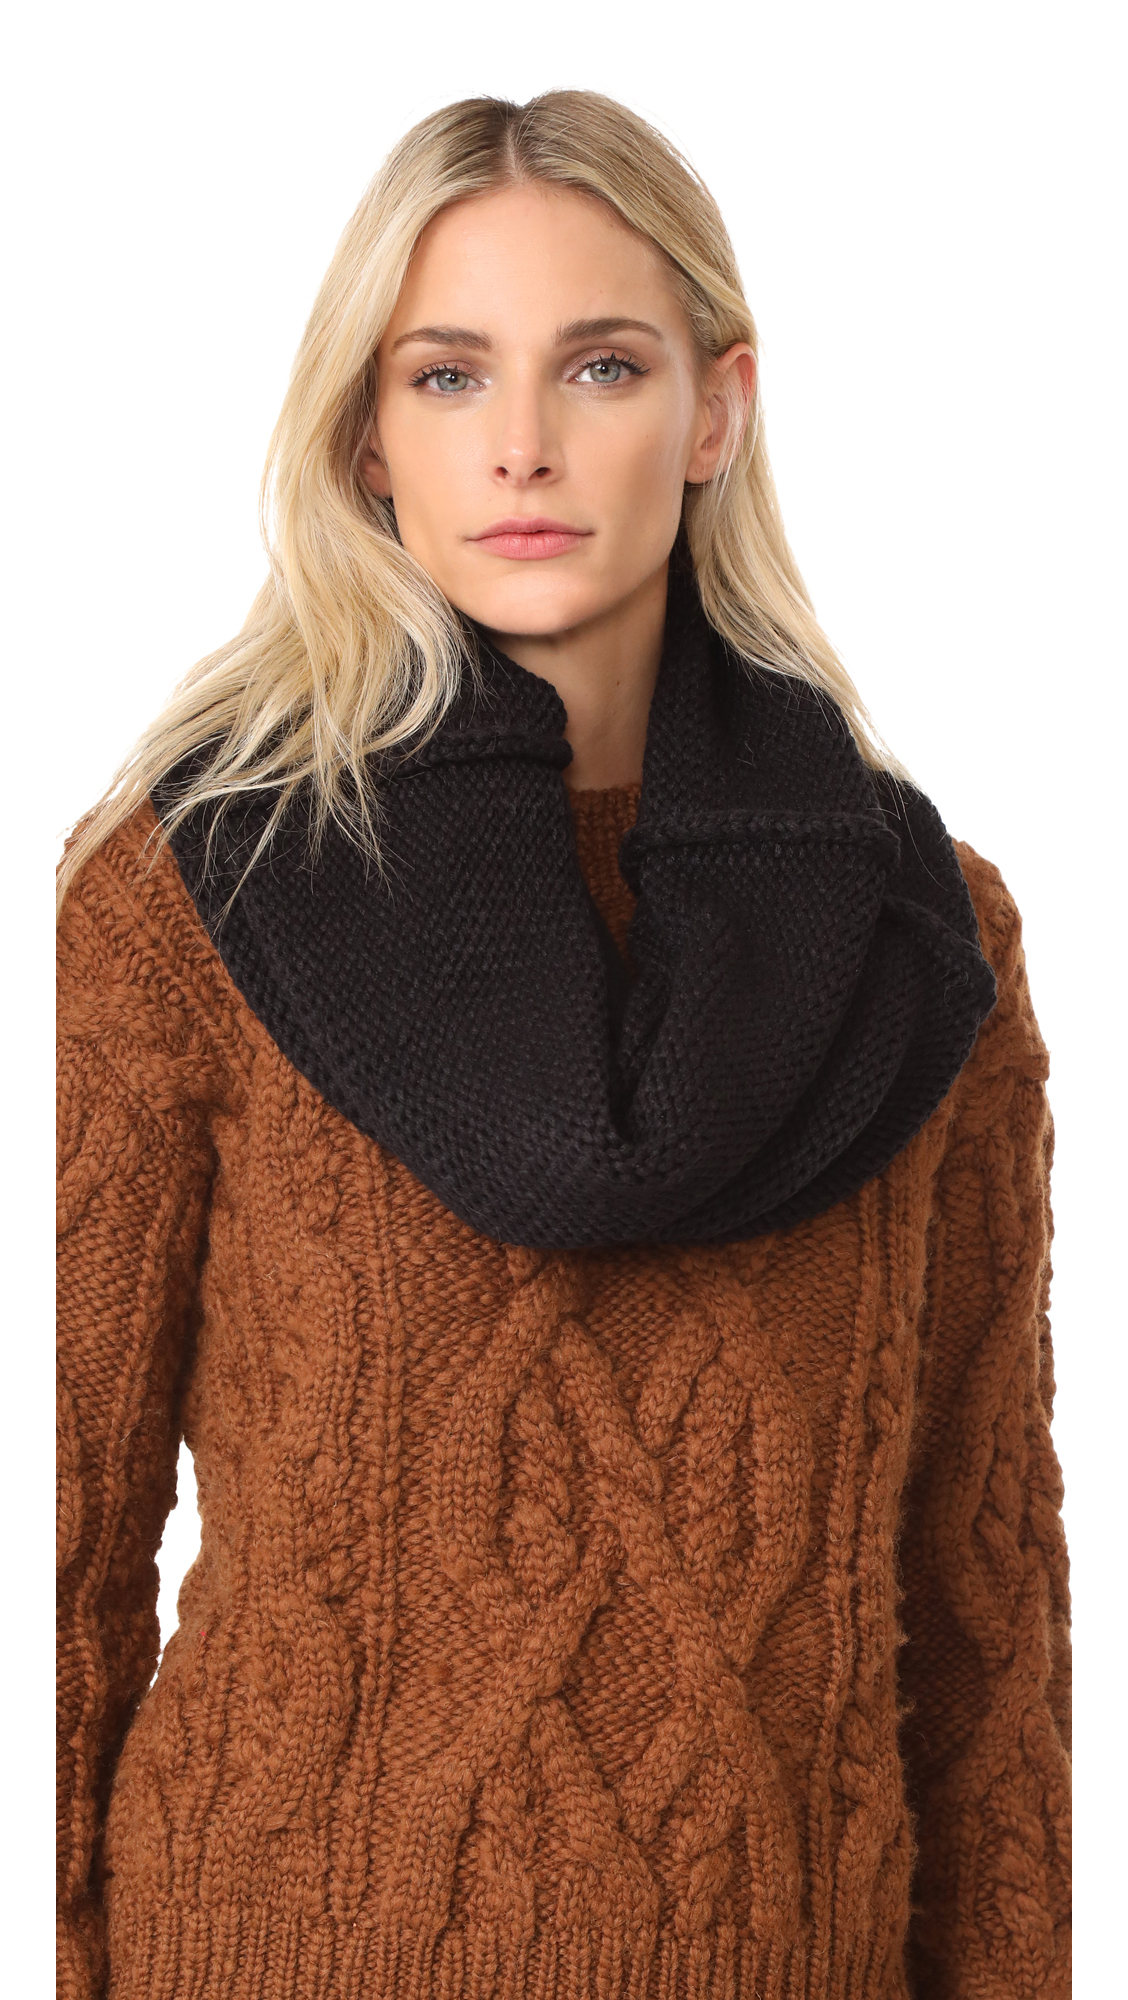 PLUSH Luxe Sherpa Neck Warmer at Shopbop.com